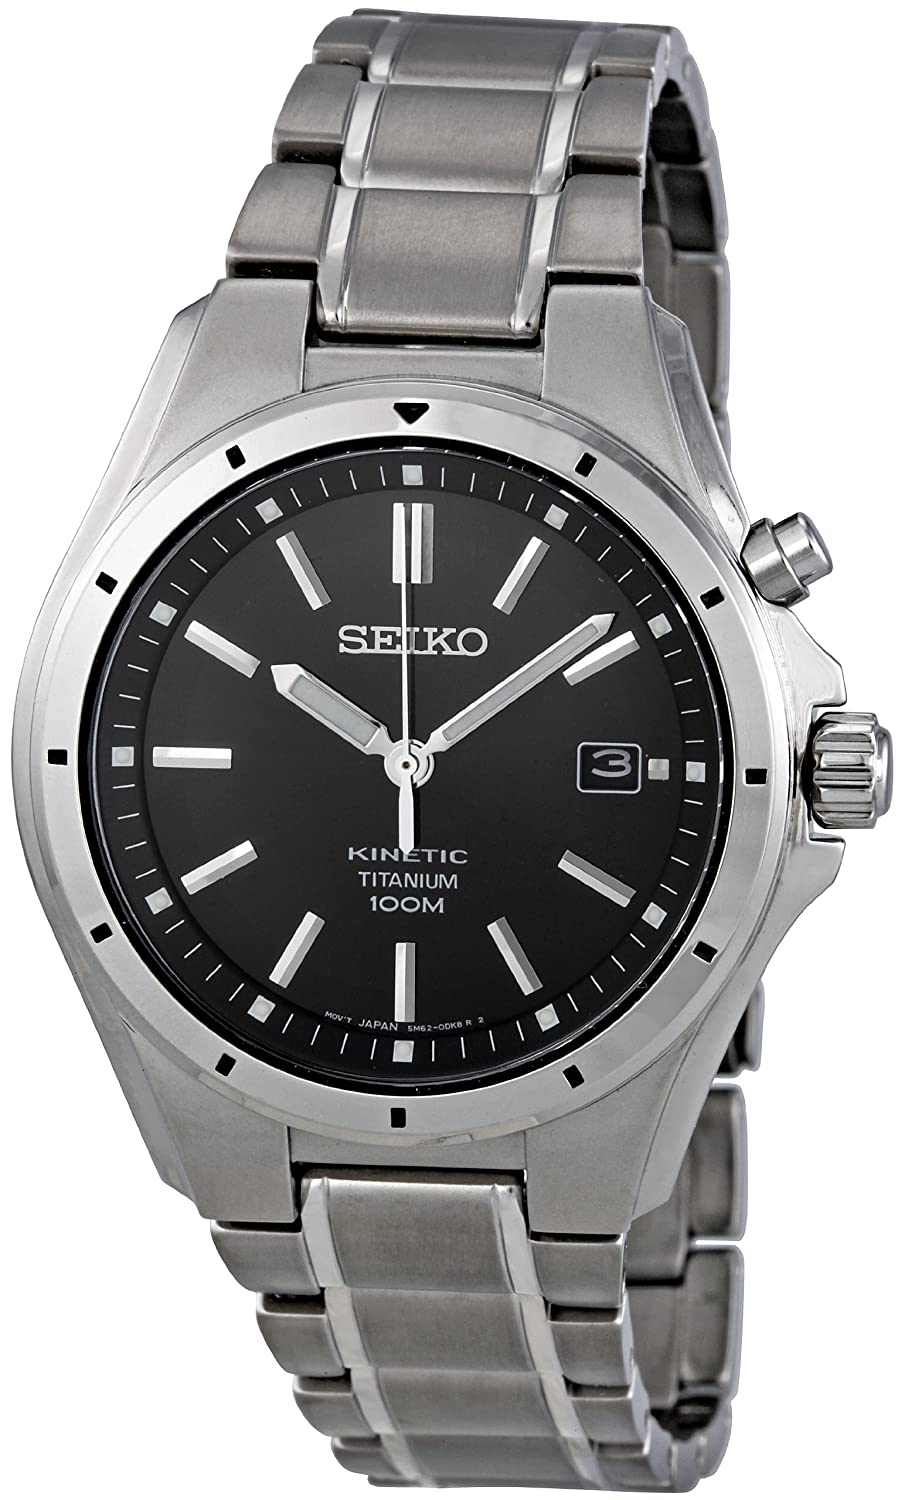 gents mens titanium seiko kinetic watch on bracelet date gents mens titanium seiko kinetic watch on bracelet date 100m water resistant ska493p1 seiko amazon co uk watches